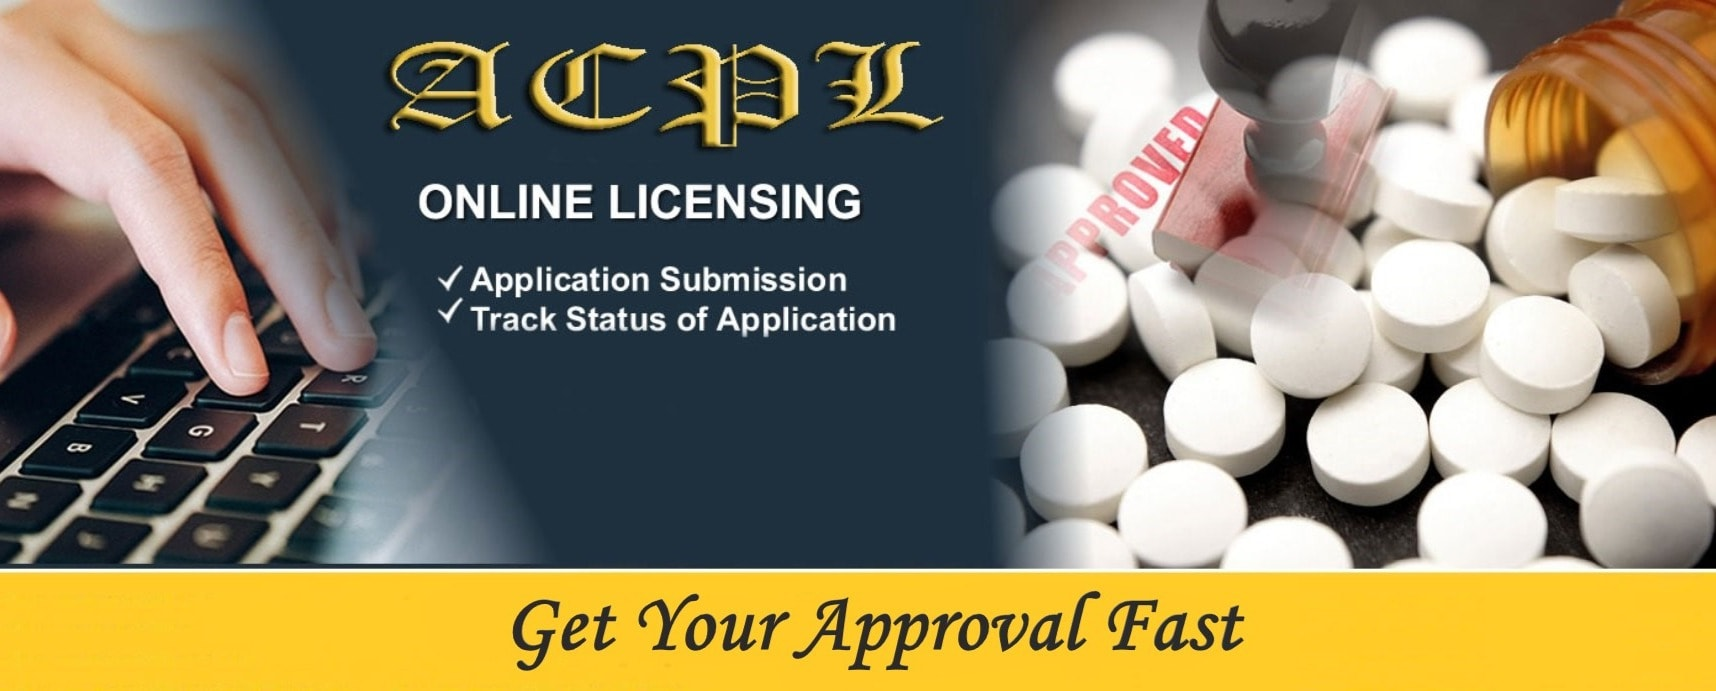 Accredited Consultant Pvt Ltd - Import Export Trading and CHA Services in Mayur Vihar Phase 1, Delhi